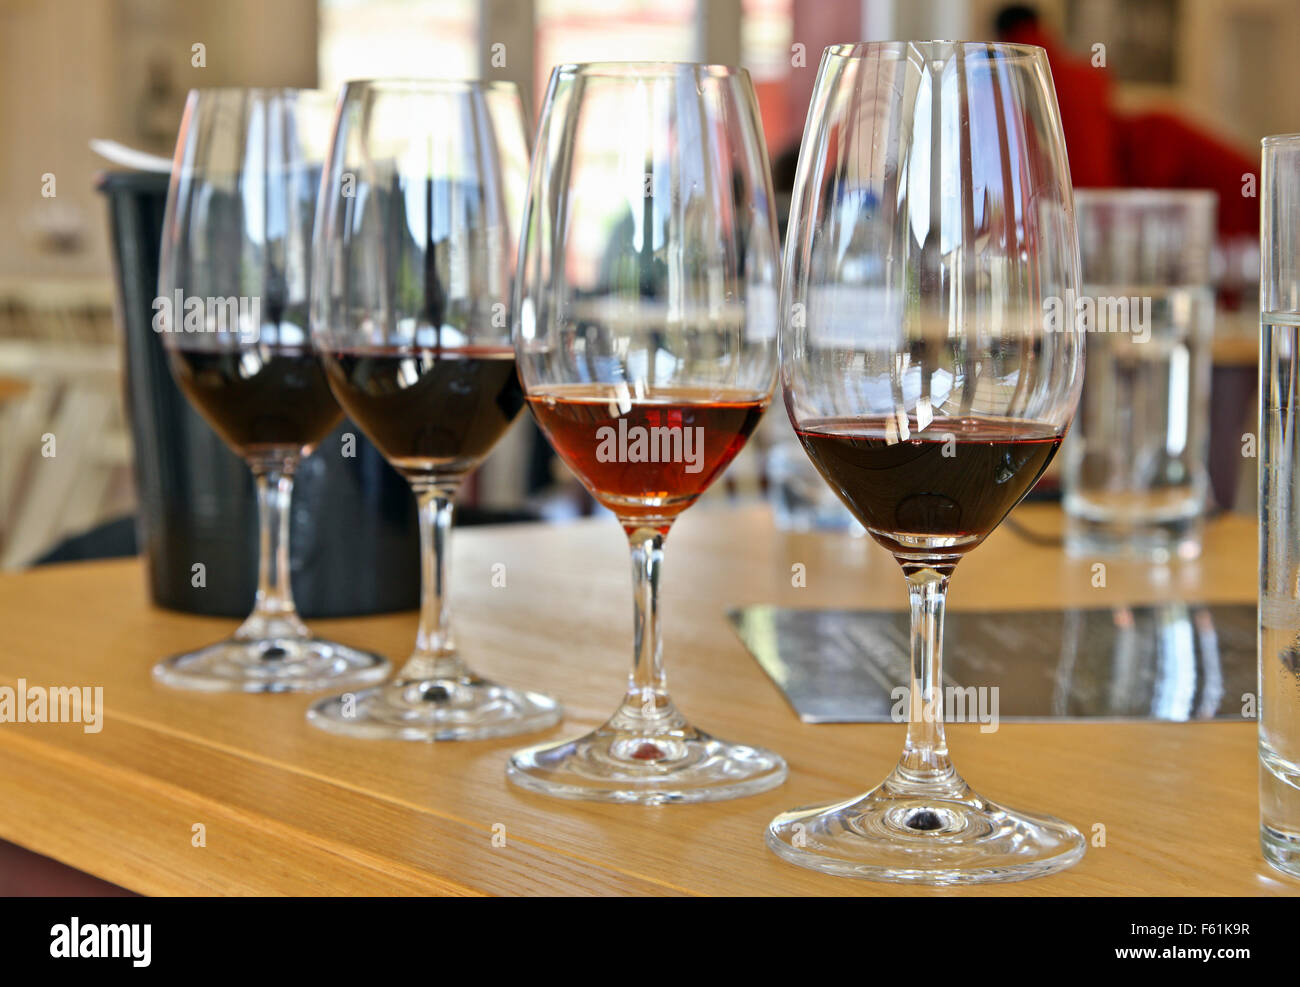 Port wines tasting at Quinta do Bonfim, one of the best wineries in Pinhao town, Douro valley, Porto e Norte, Portugal. - Stock Image